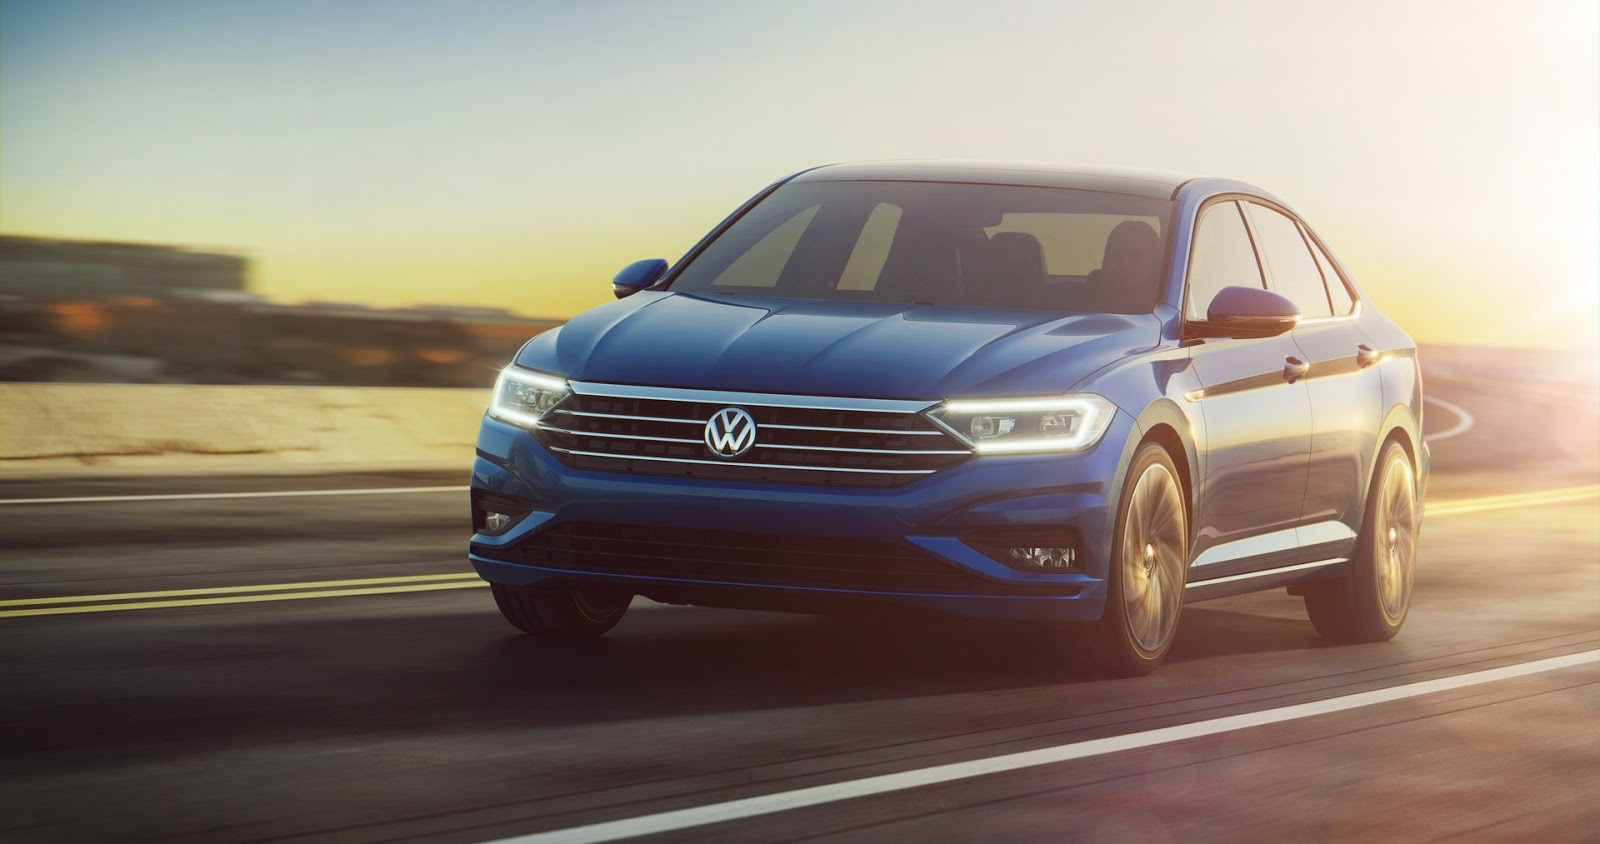 nuevo volkswagen jetta 2019 es presentado llegar a m xico muy pronto autos actual m xico. Black Bedroom Furniture Sets. Home Design Ideas